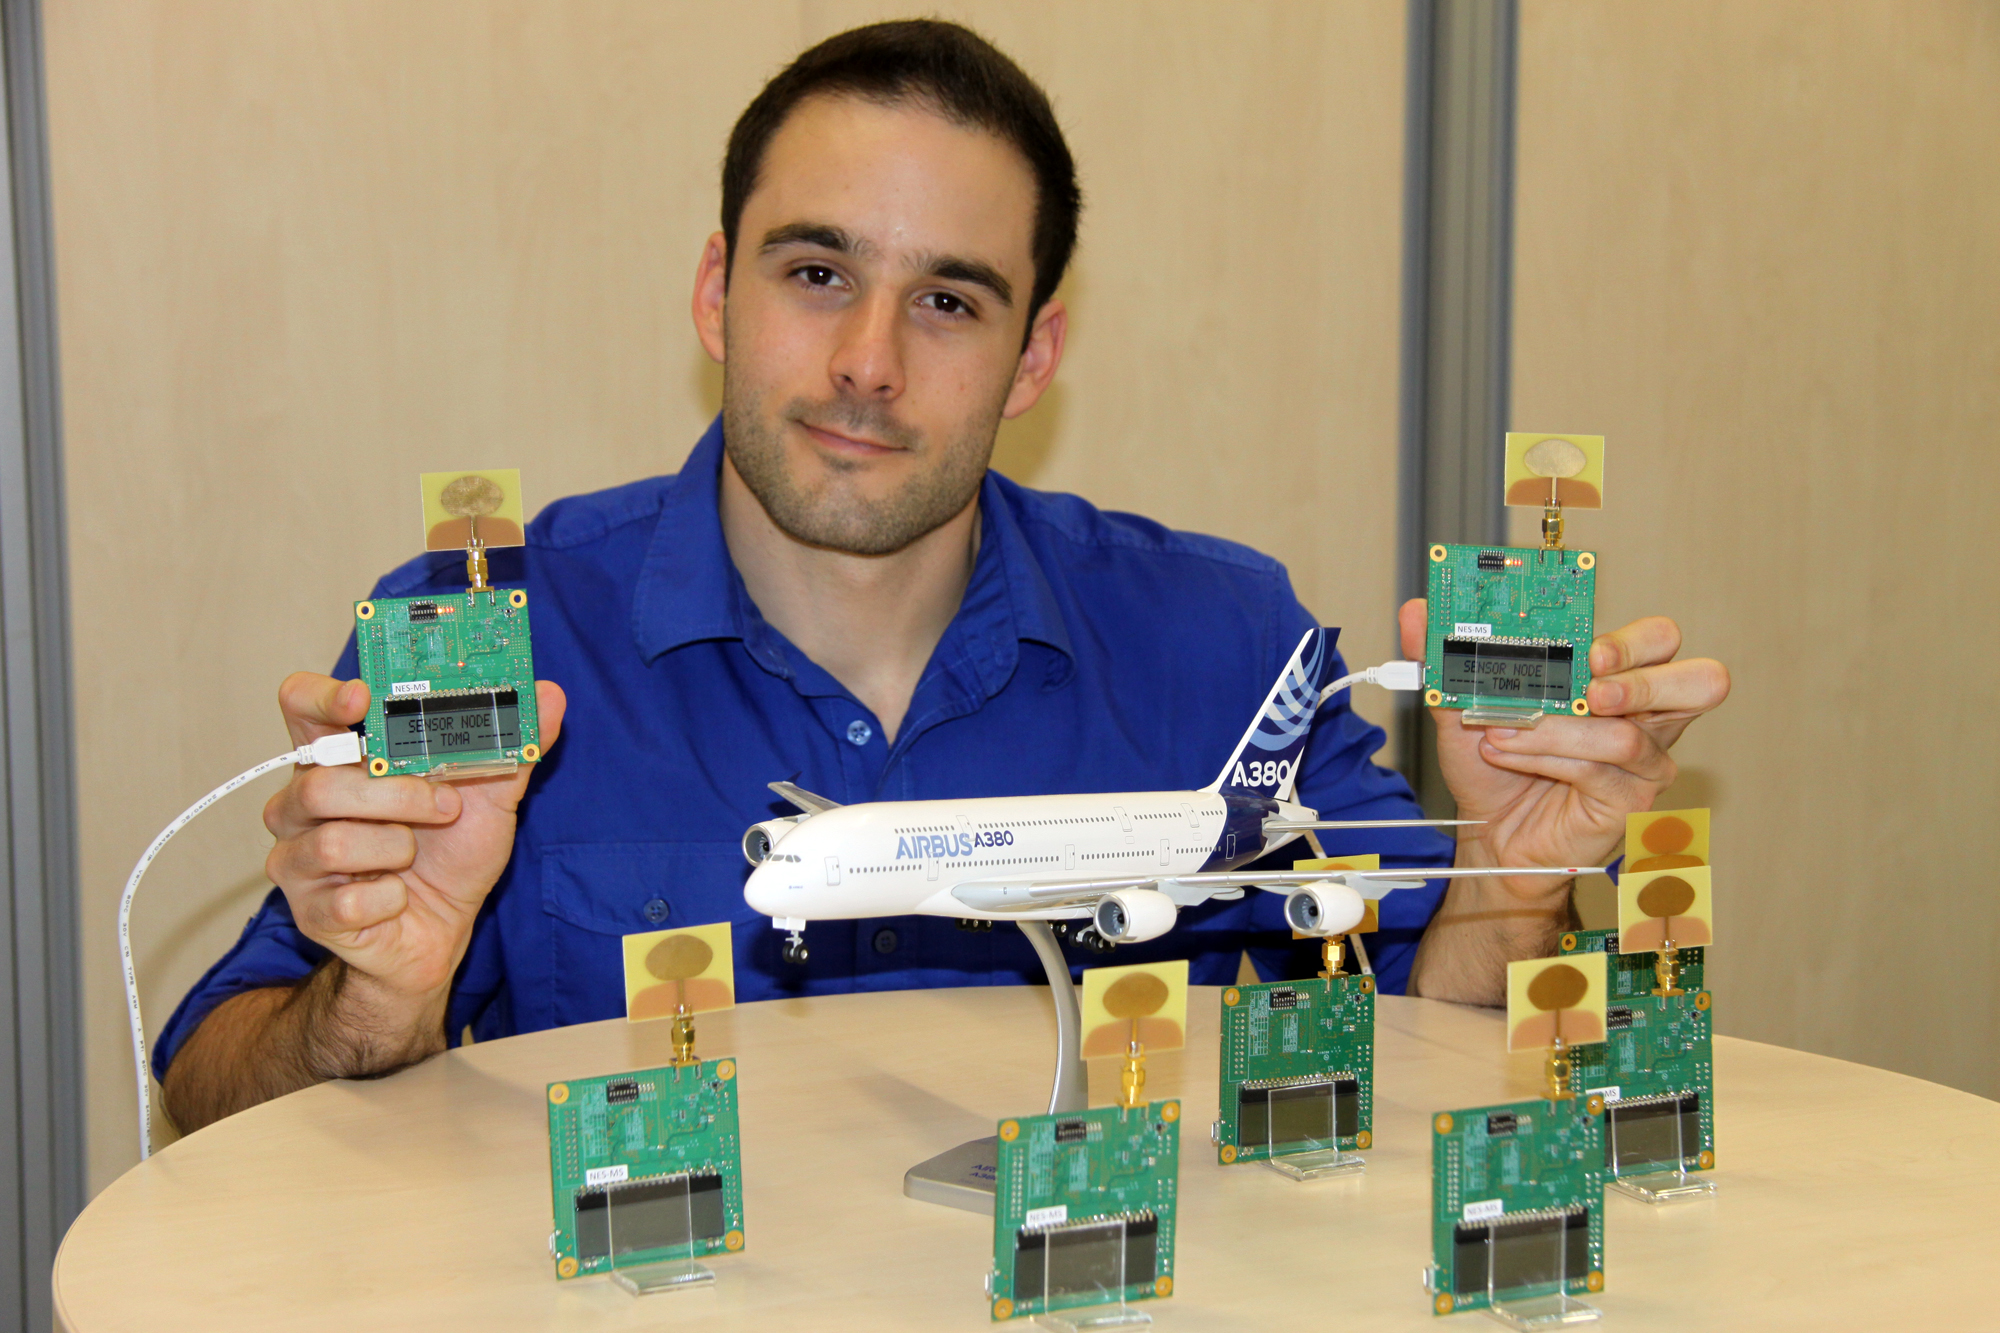 UWB sensor networks in airplanes – Networked and Embedded